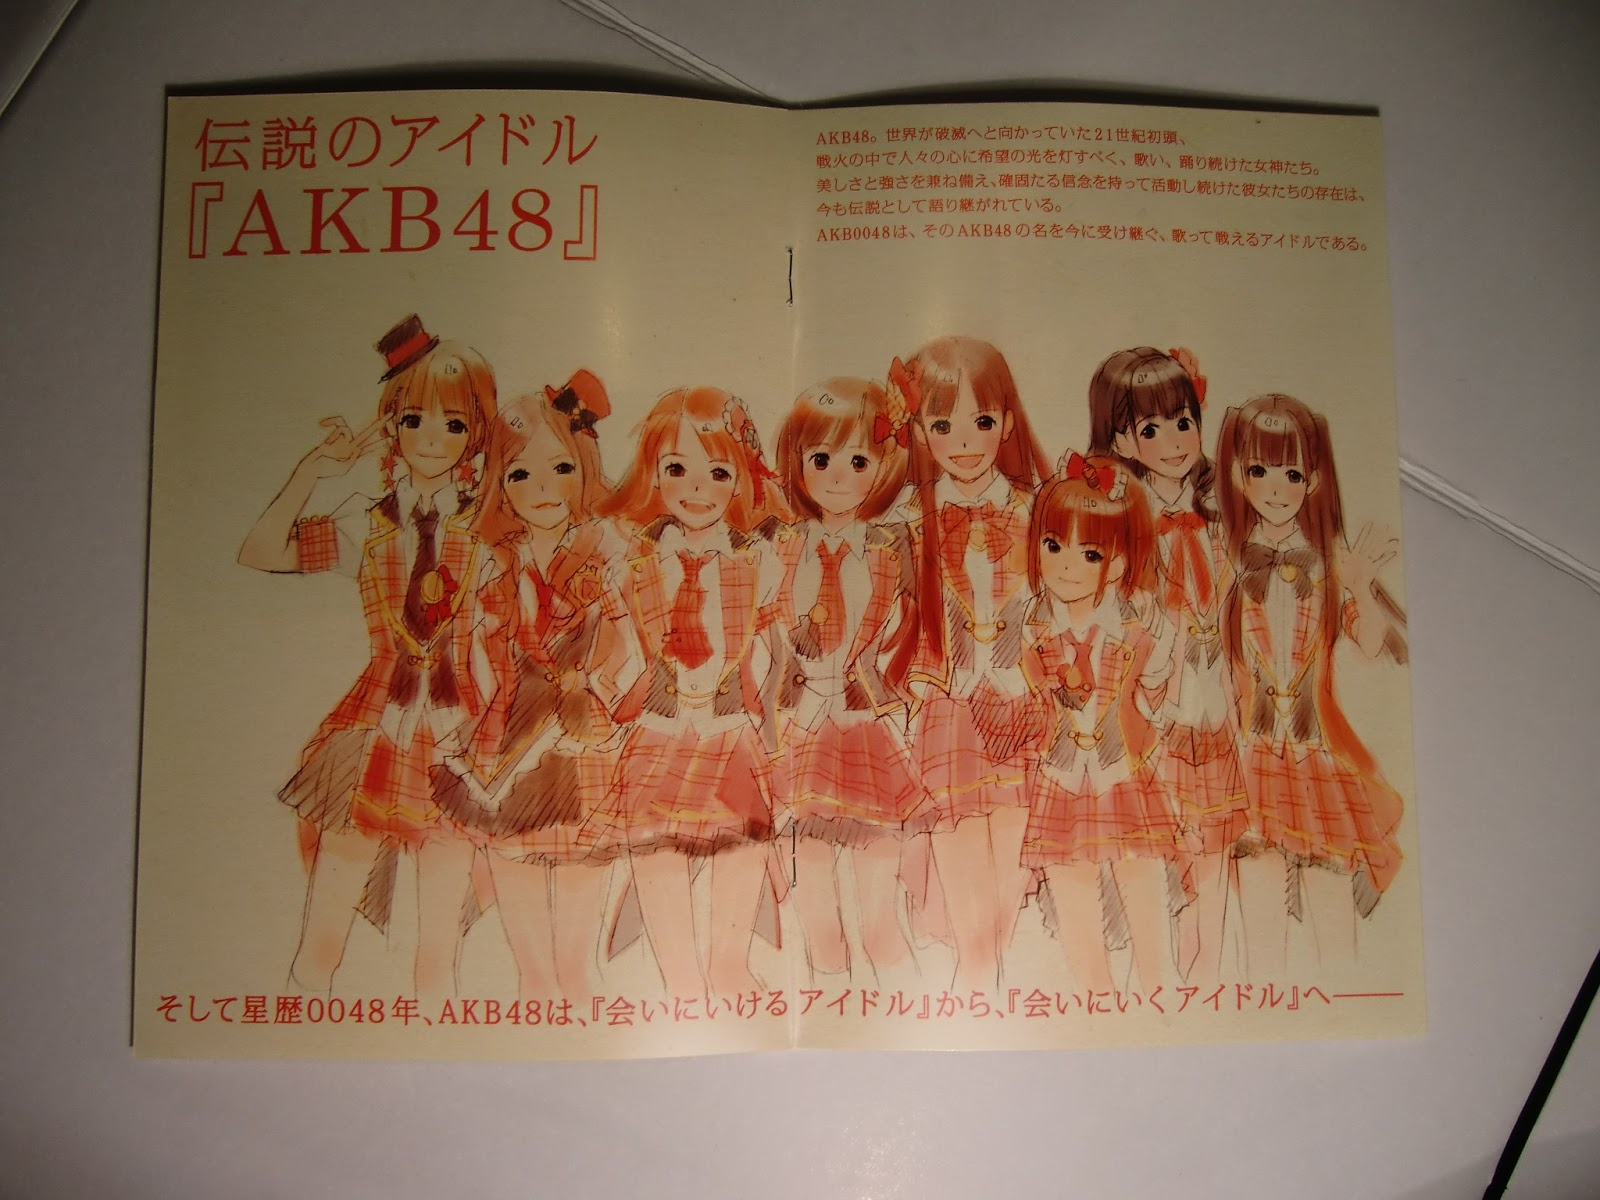 AKB48 perfetto dating